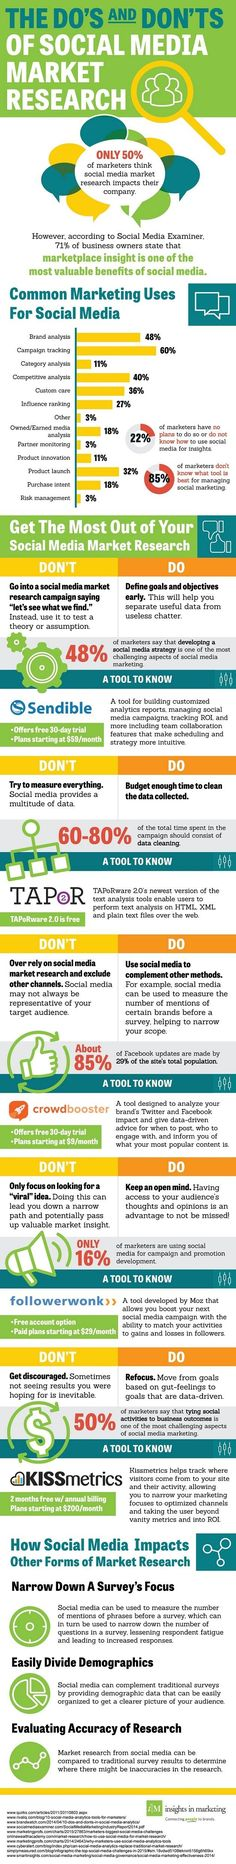 Social Media - The Do's and Don'ts of Social Media Research [Infographic] : MarketingProfs Article http://itz-my.com